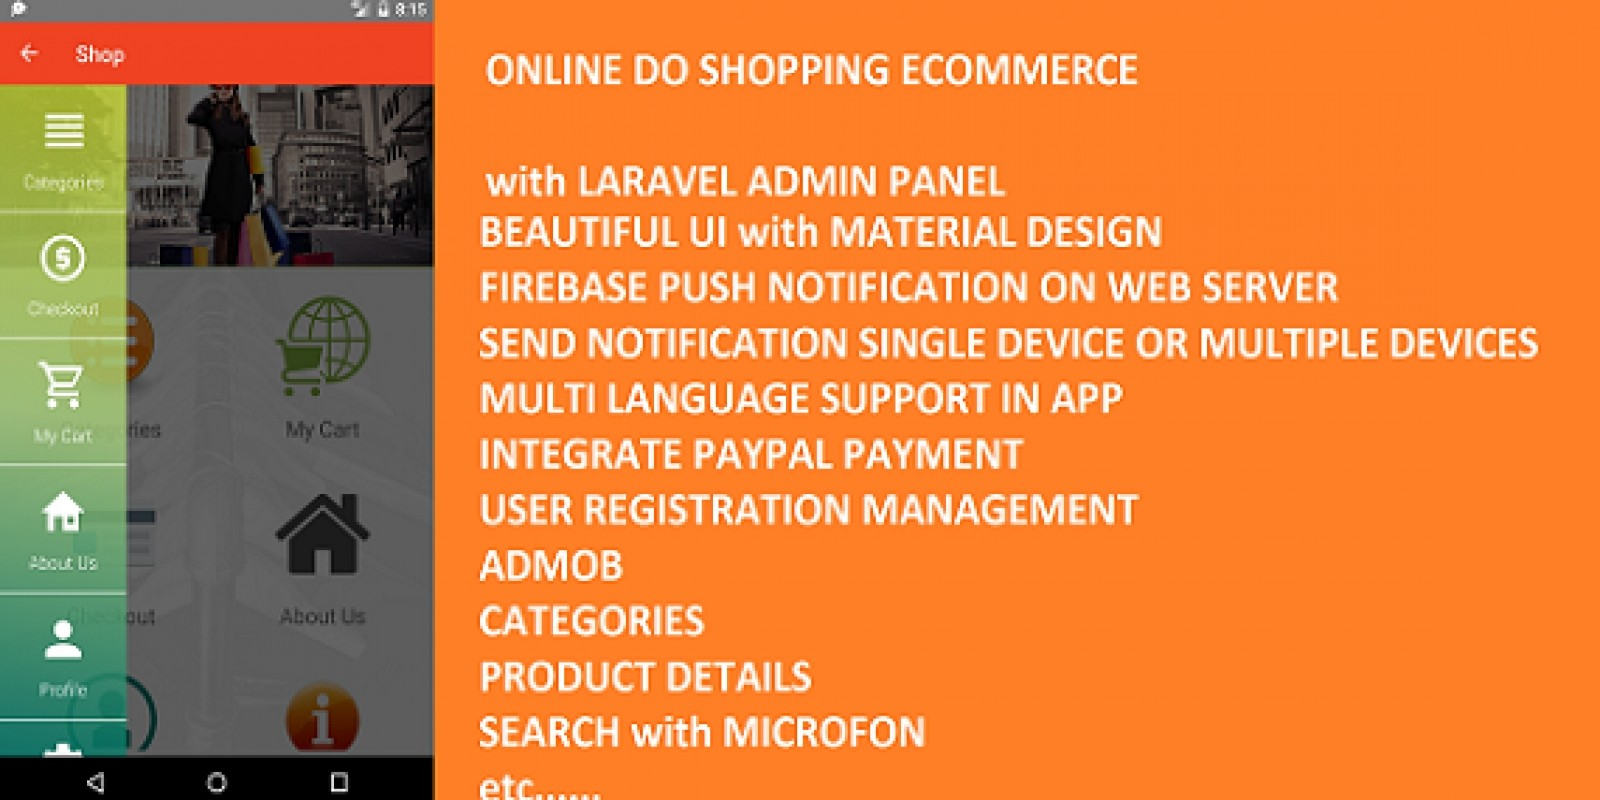 DoSHopping eCommerce App With Laravel Admin Panel